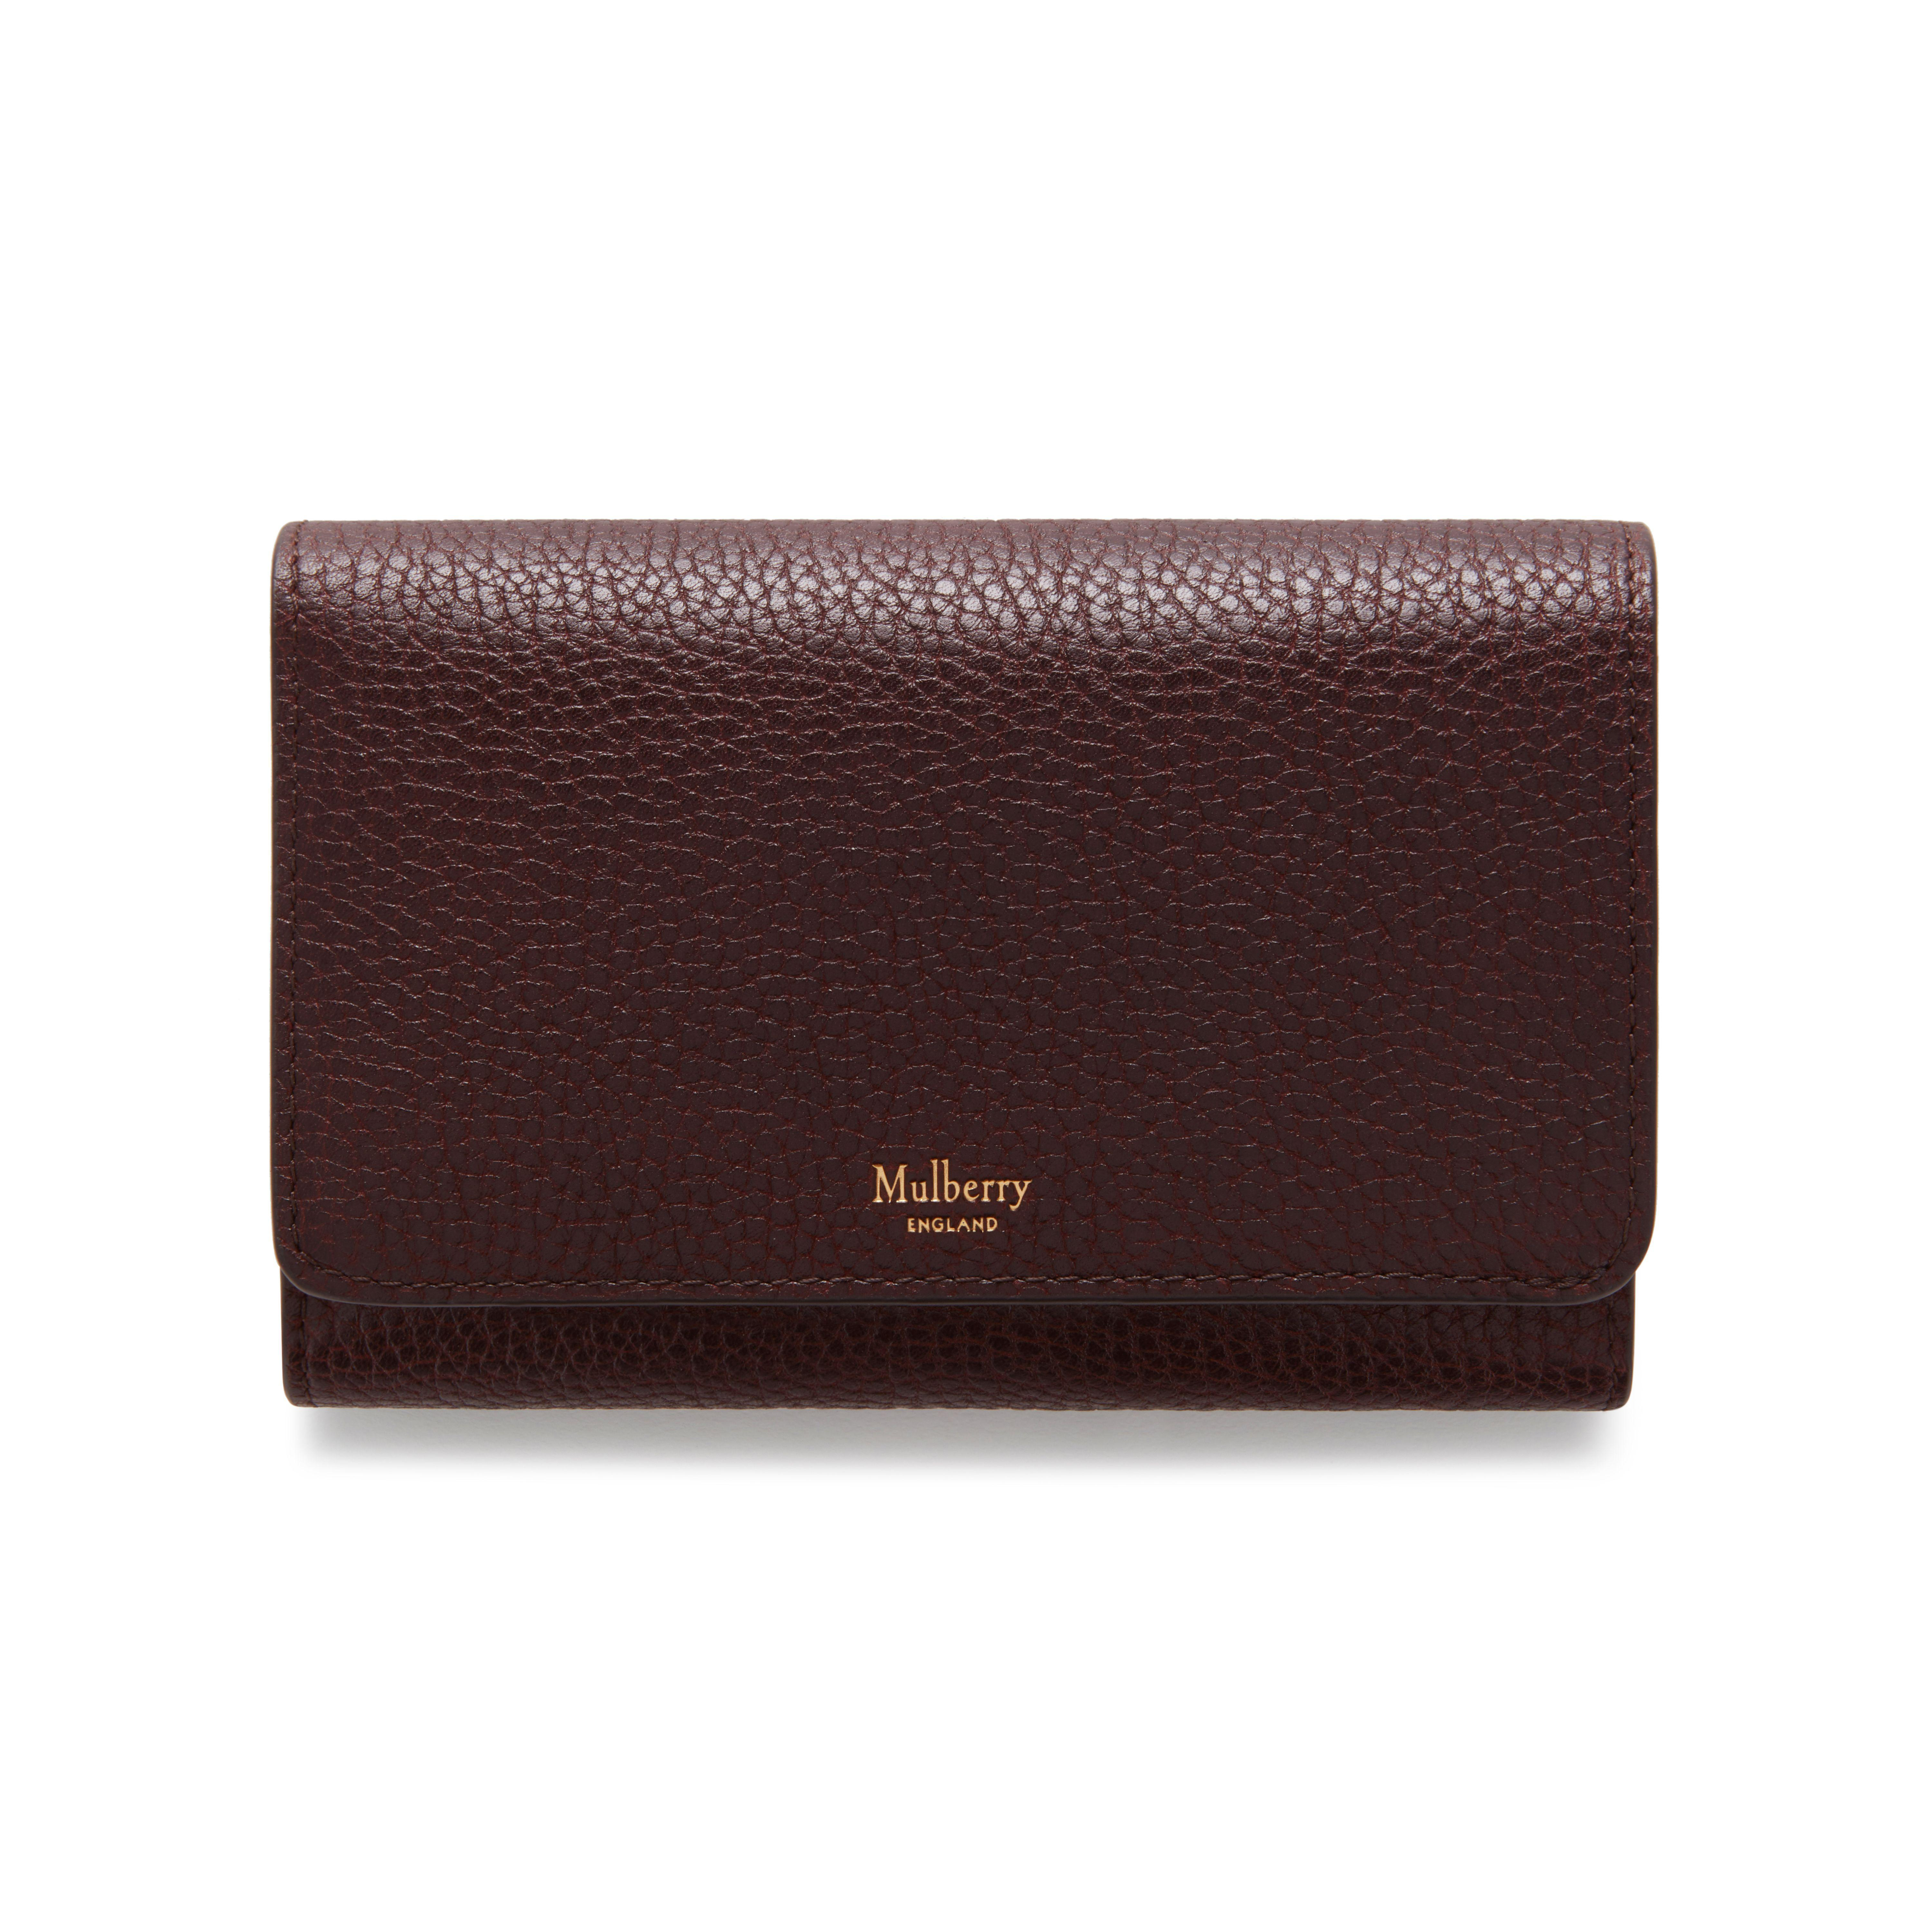 92c0dfd31e7 ... coupon code for mulberry multicolor medium continental french purse lyst.  view fullscreen f046d 0c480